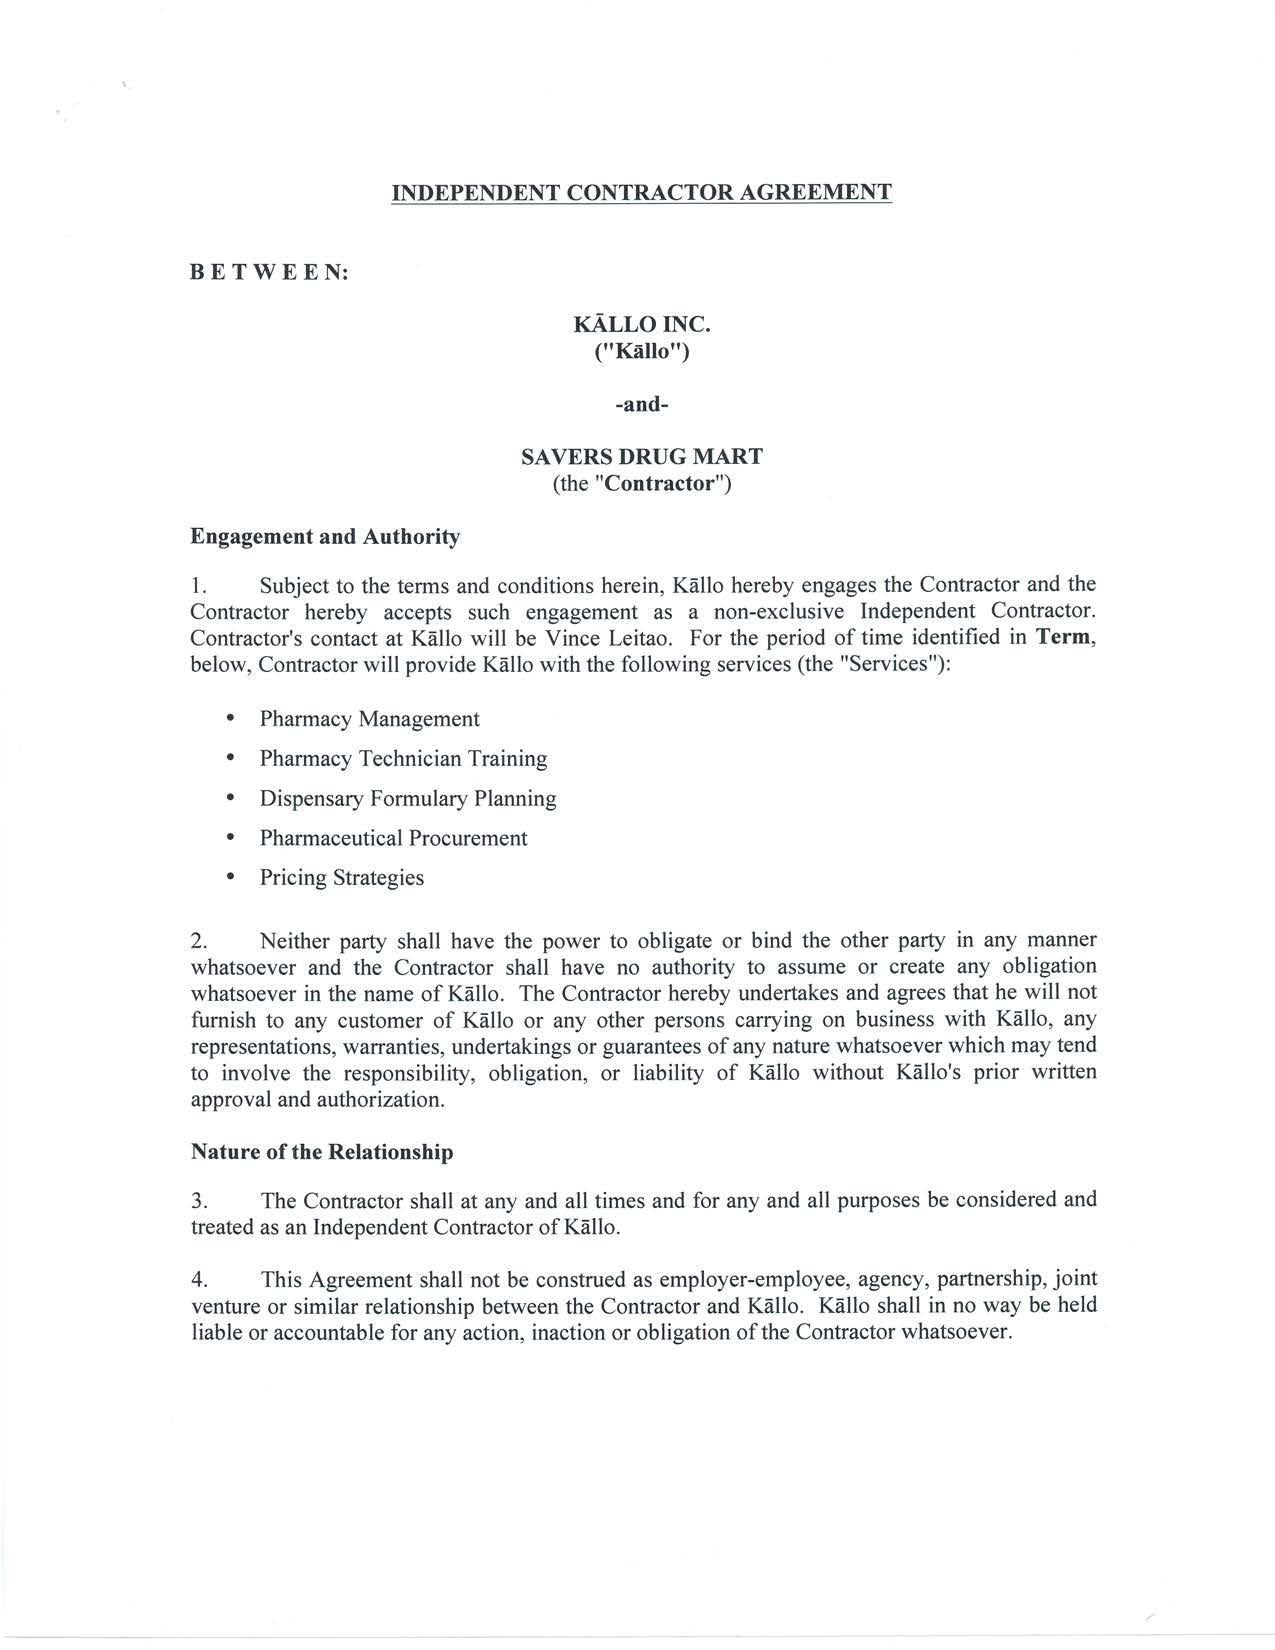 Kallo Inc. - FORM 8-K - EX-10.1 - INDEPENDENT CONTRACTOR AGREEMENT ...